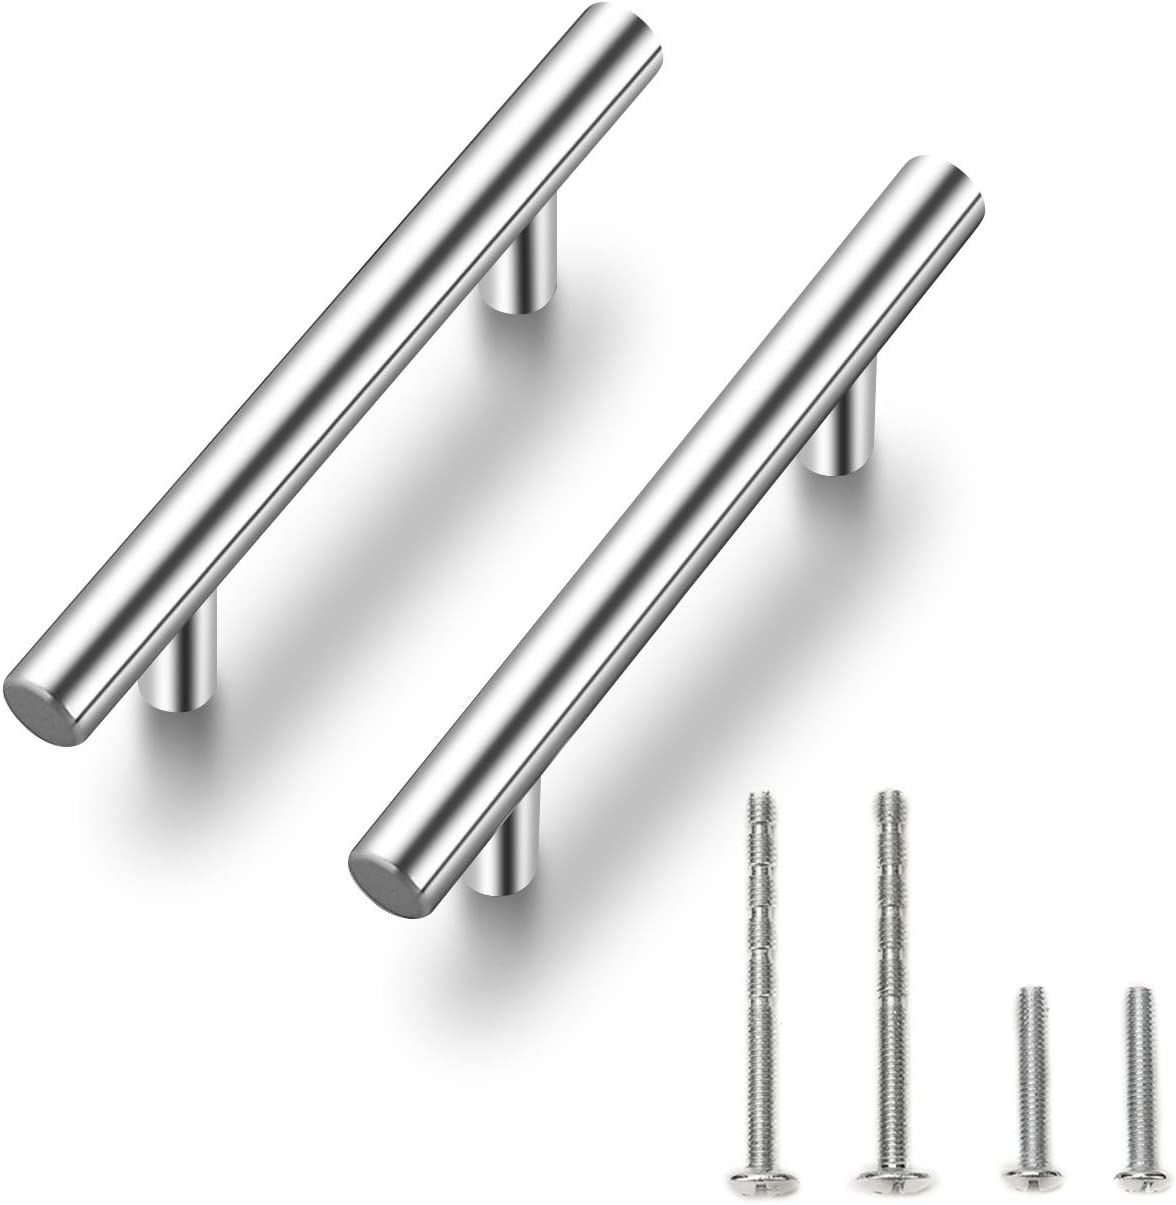 "30 Pack |6'' Cabinet Pulls Brushed Nickel Stainless Steel Kitchen Cupboard Handles Cabinet Handles 6""Length, 3.75"" Hole Center"